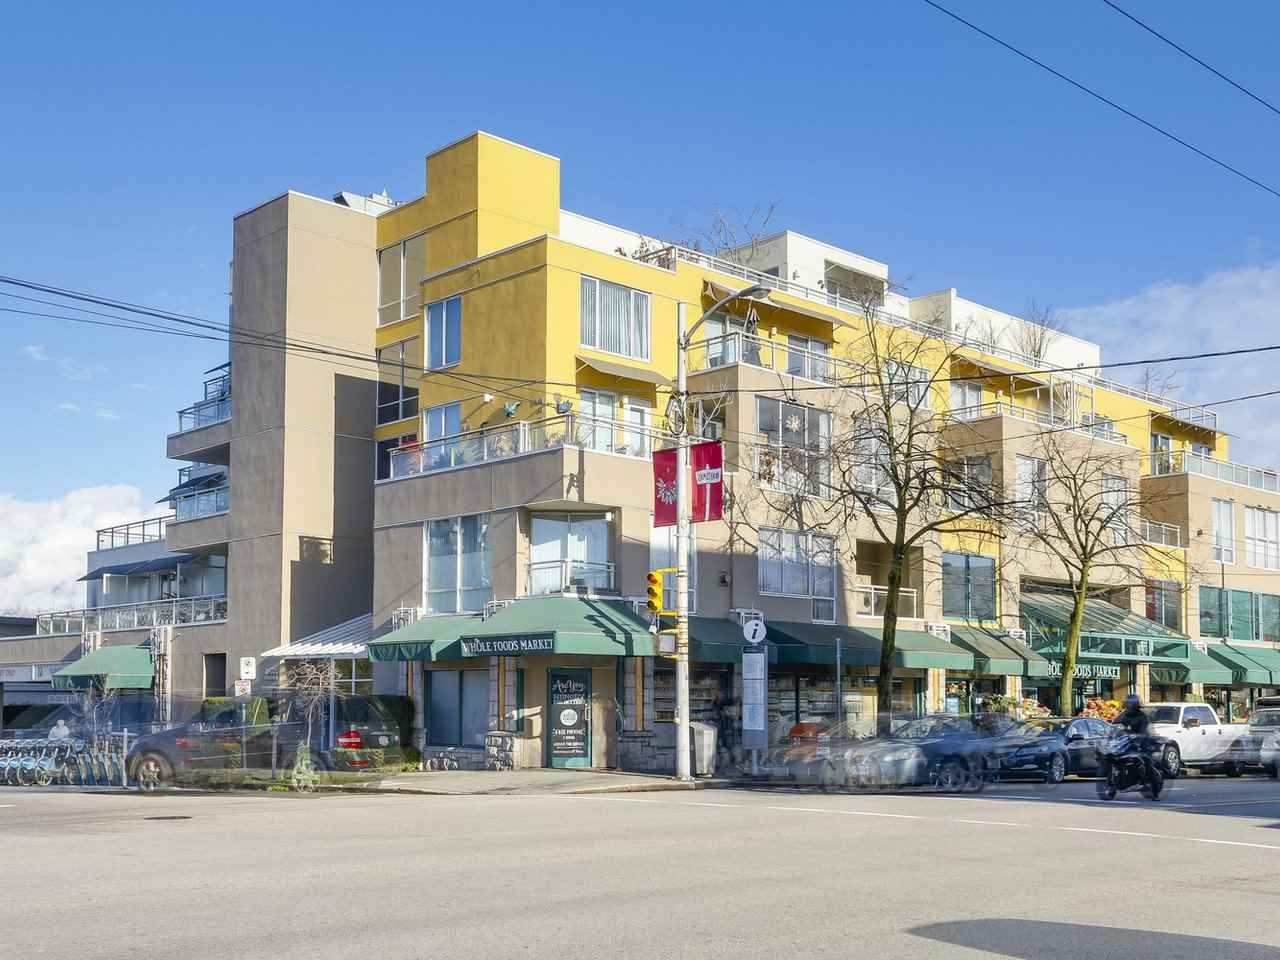 """Main Photo: 301 1978 VINE Street in Vancouver: Kitsilano Condo for sale in """"CAPERS BUILDING"""" (Vancouver West)  : MLS®# R2224832"""